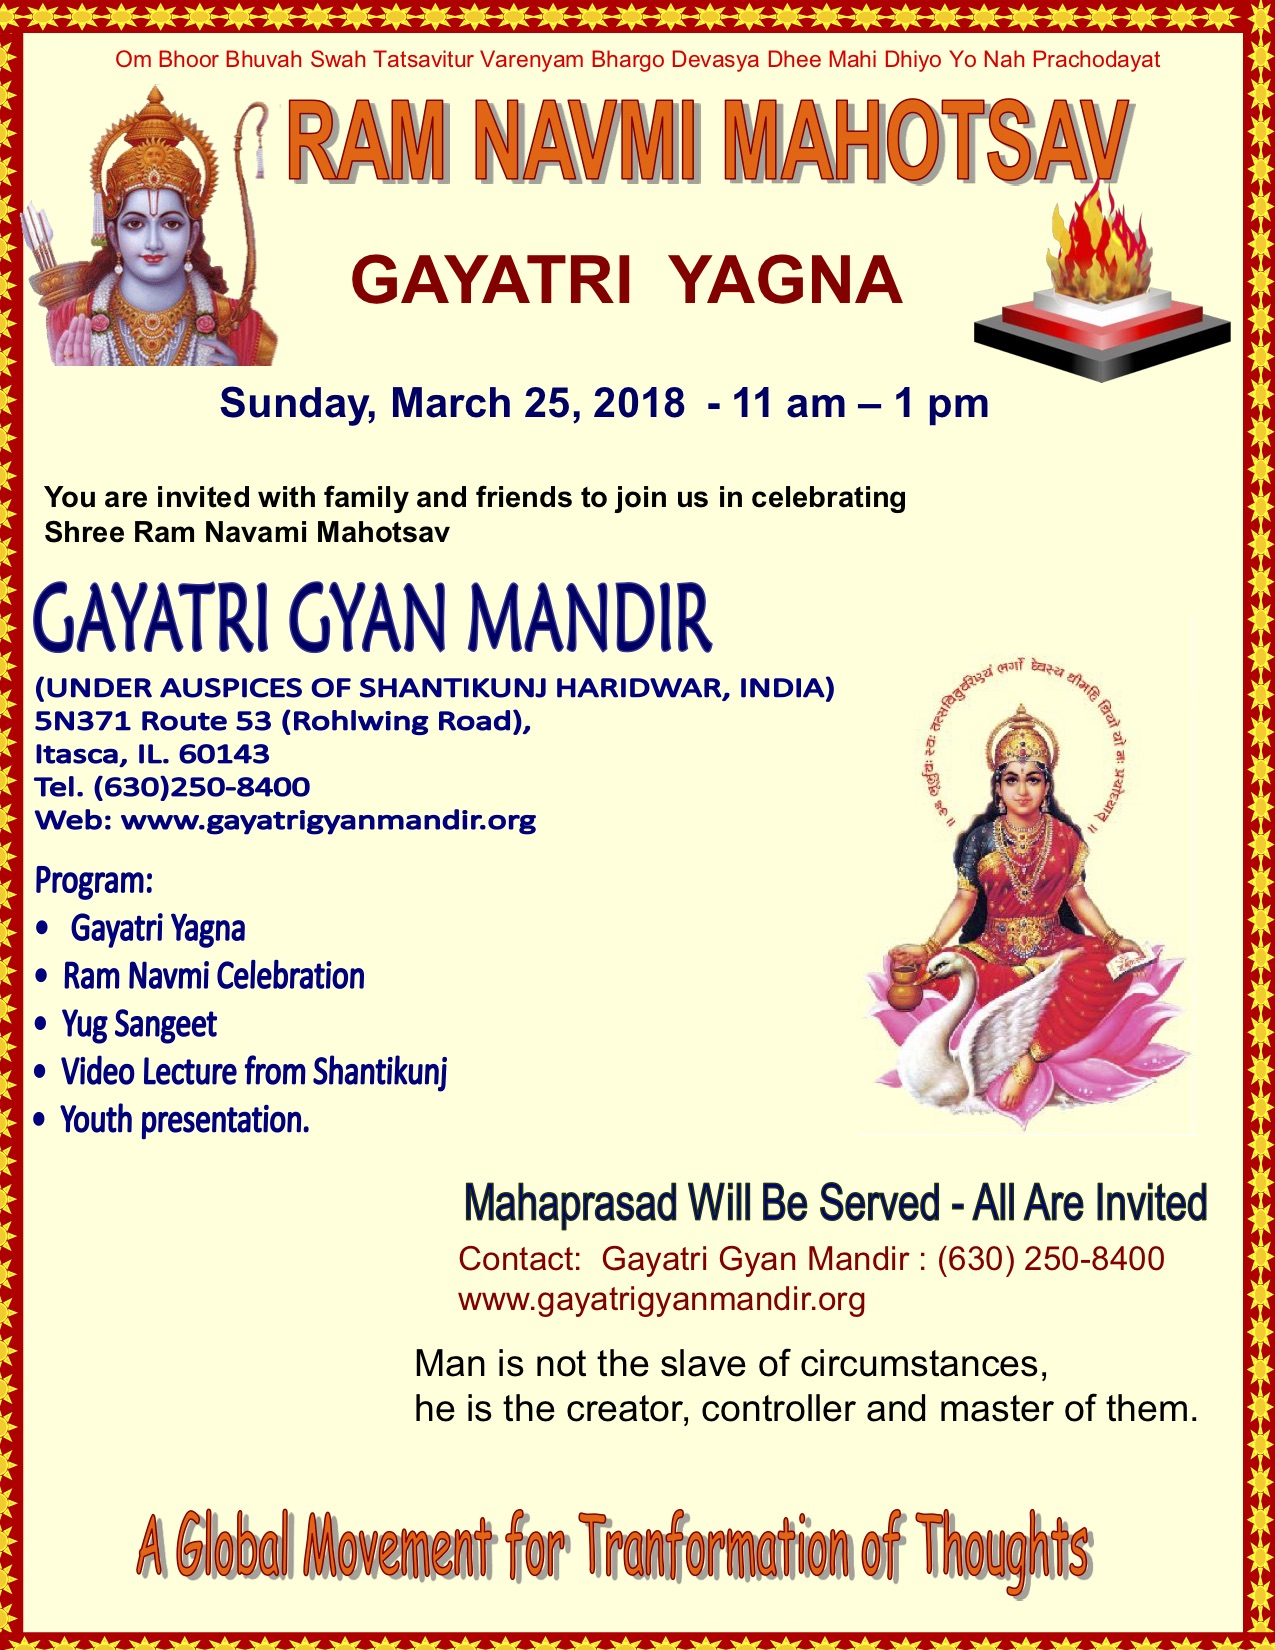 Calendar Ramnavmi : Gayatri gyan mandir upcoming events ram navmi mahotsav